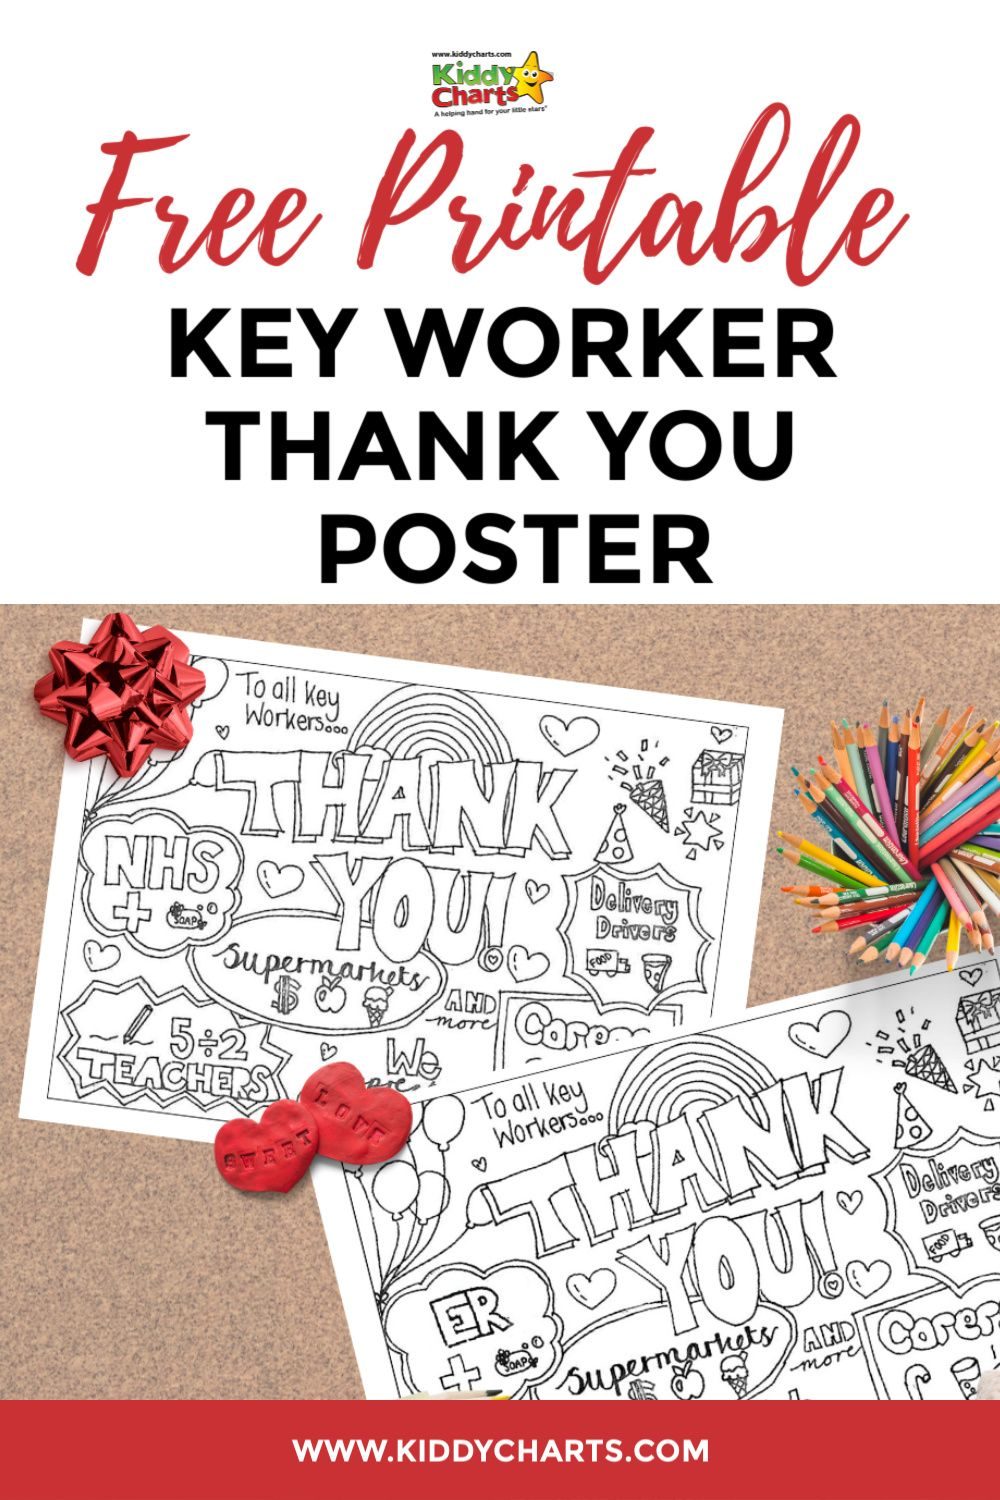 Free Printable Key Worker Thank You Poster Thank You Poster Coloring Pages For Kids Craft Activities For Kids